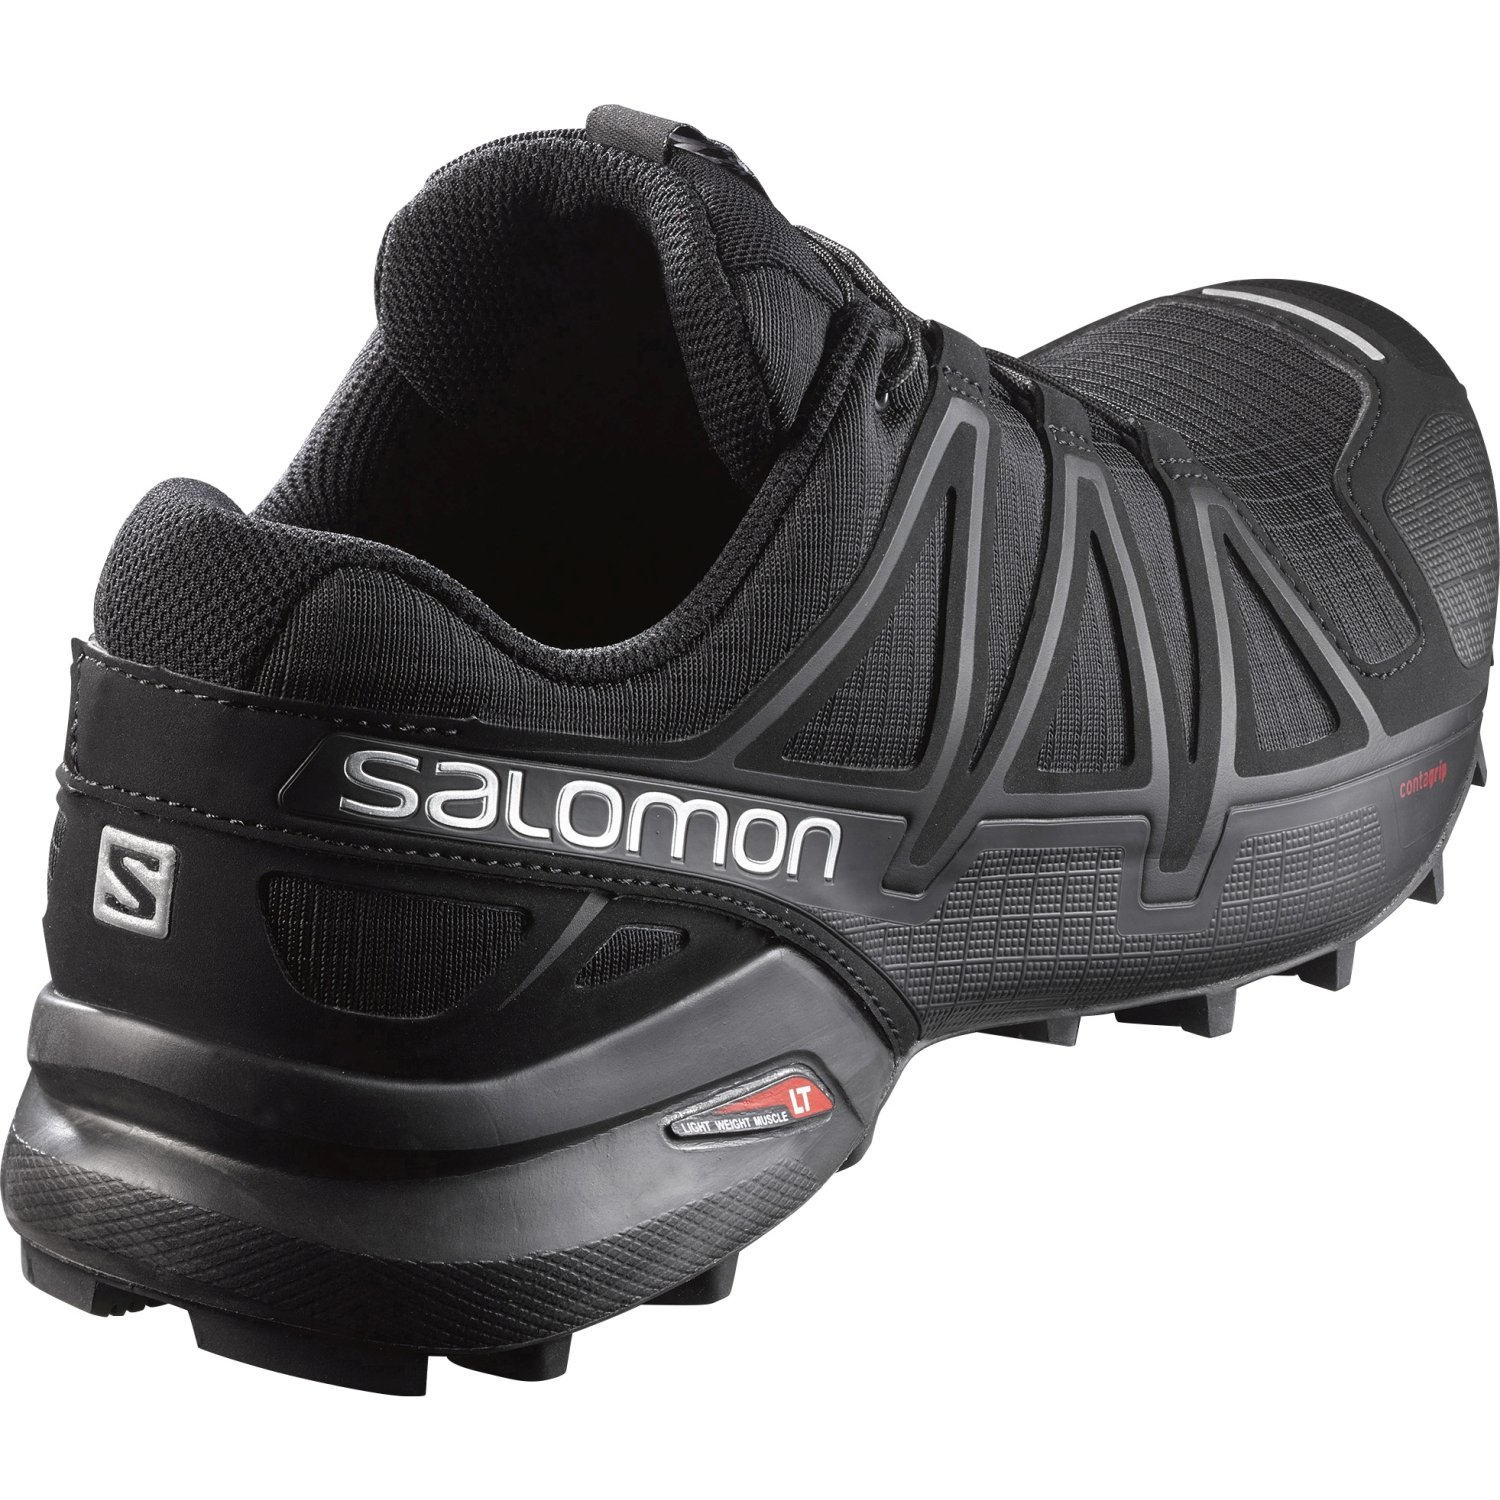 separation shoes 889c4 326a0 Salomon Wings Pro 2, Chaussures de Trail Homme, Bleu (Nautical Blue Flame